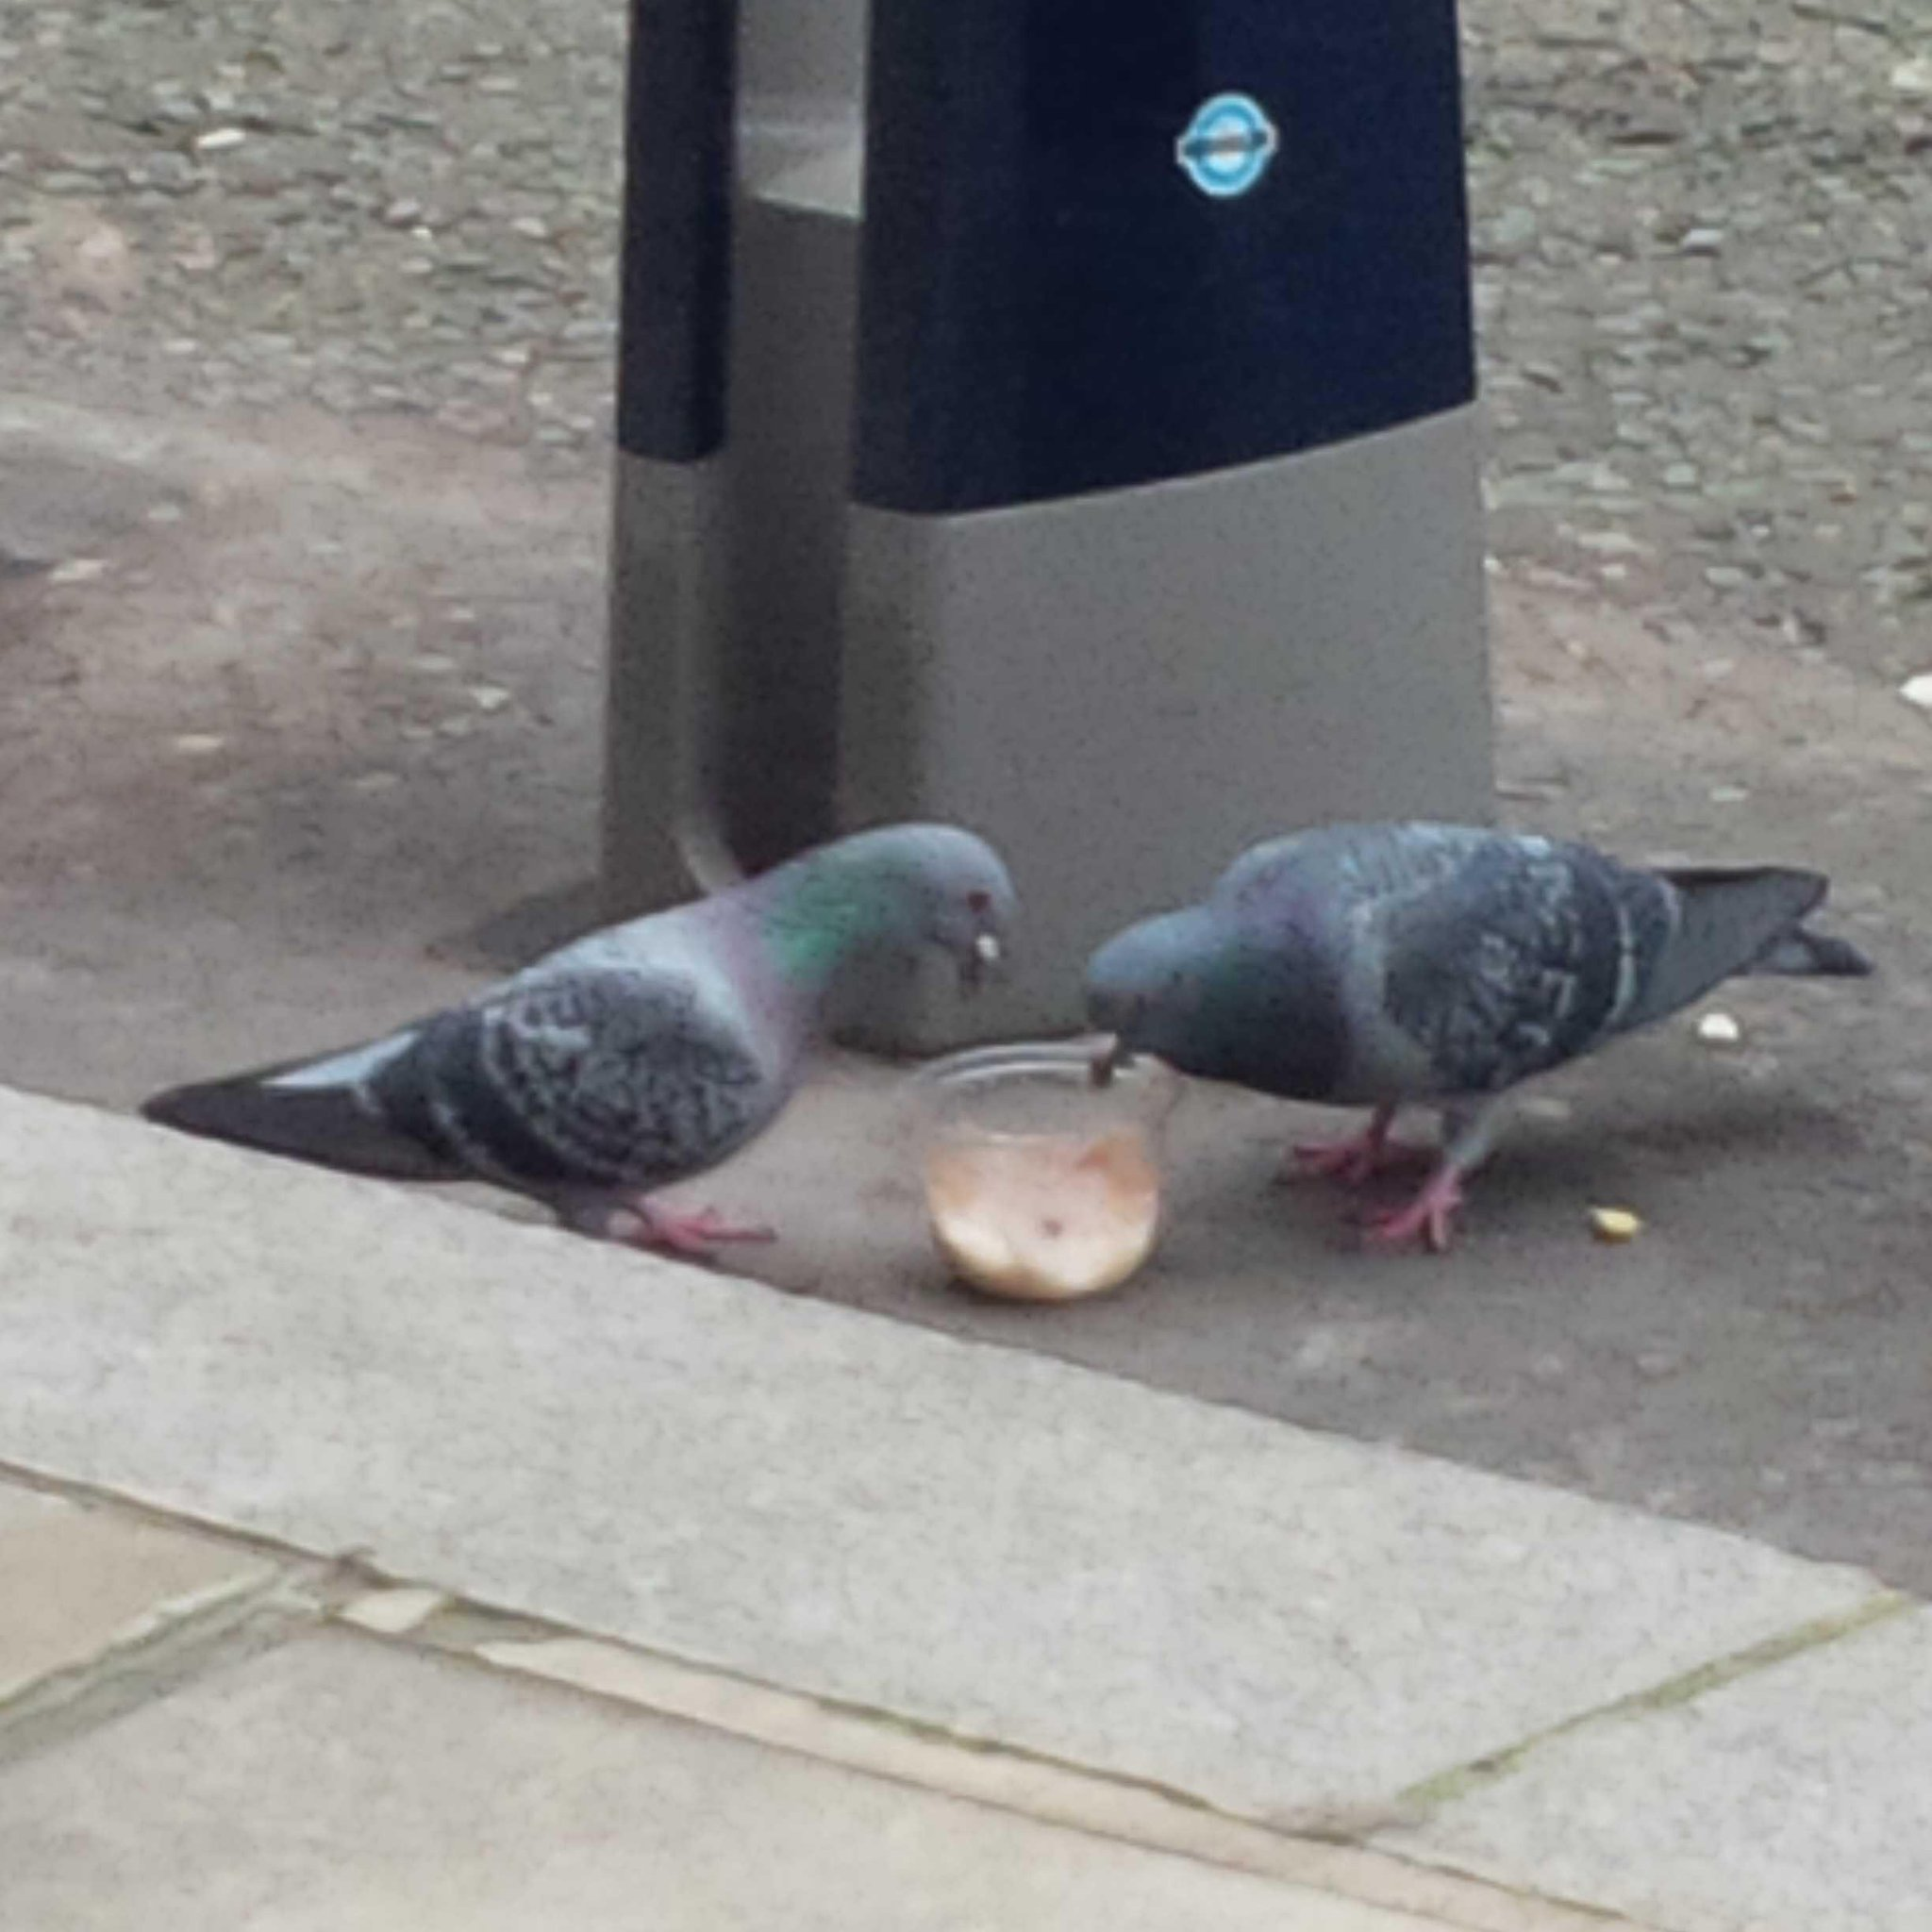 Kensington is now so posh, even the pigeons eat granola and yoghurt for breakfast. http://t.co/7cXPyJJZTW